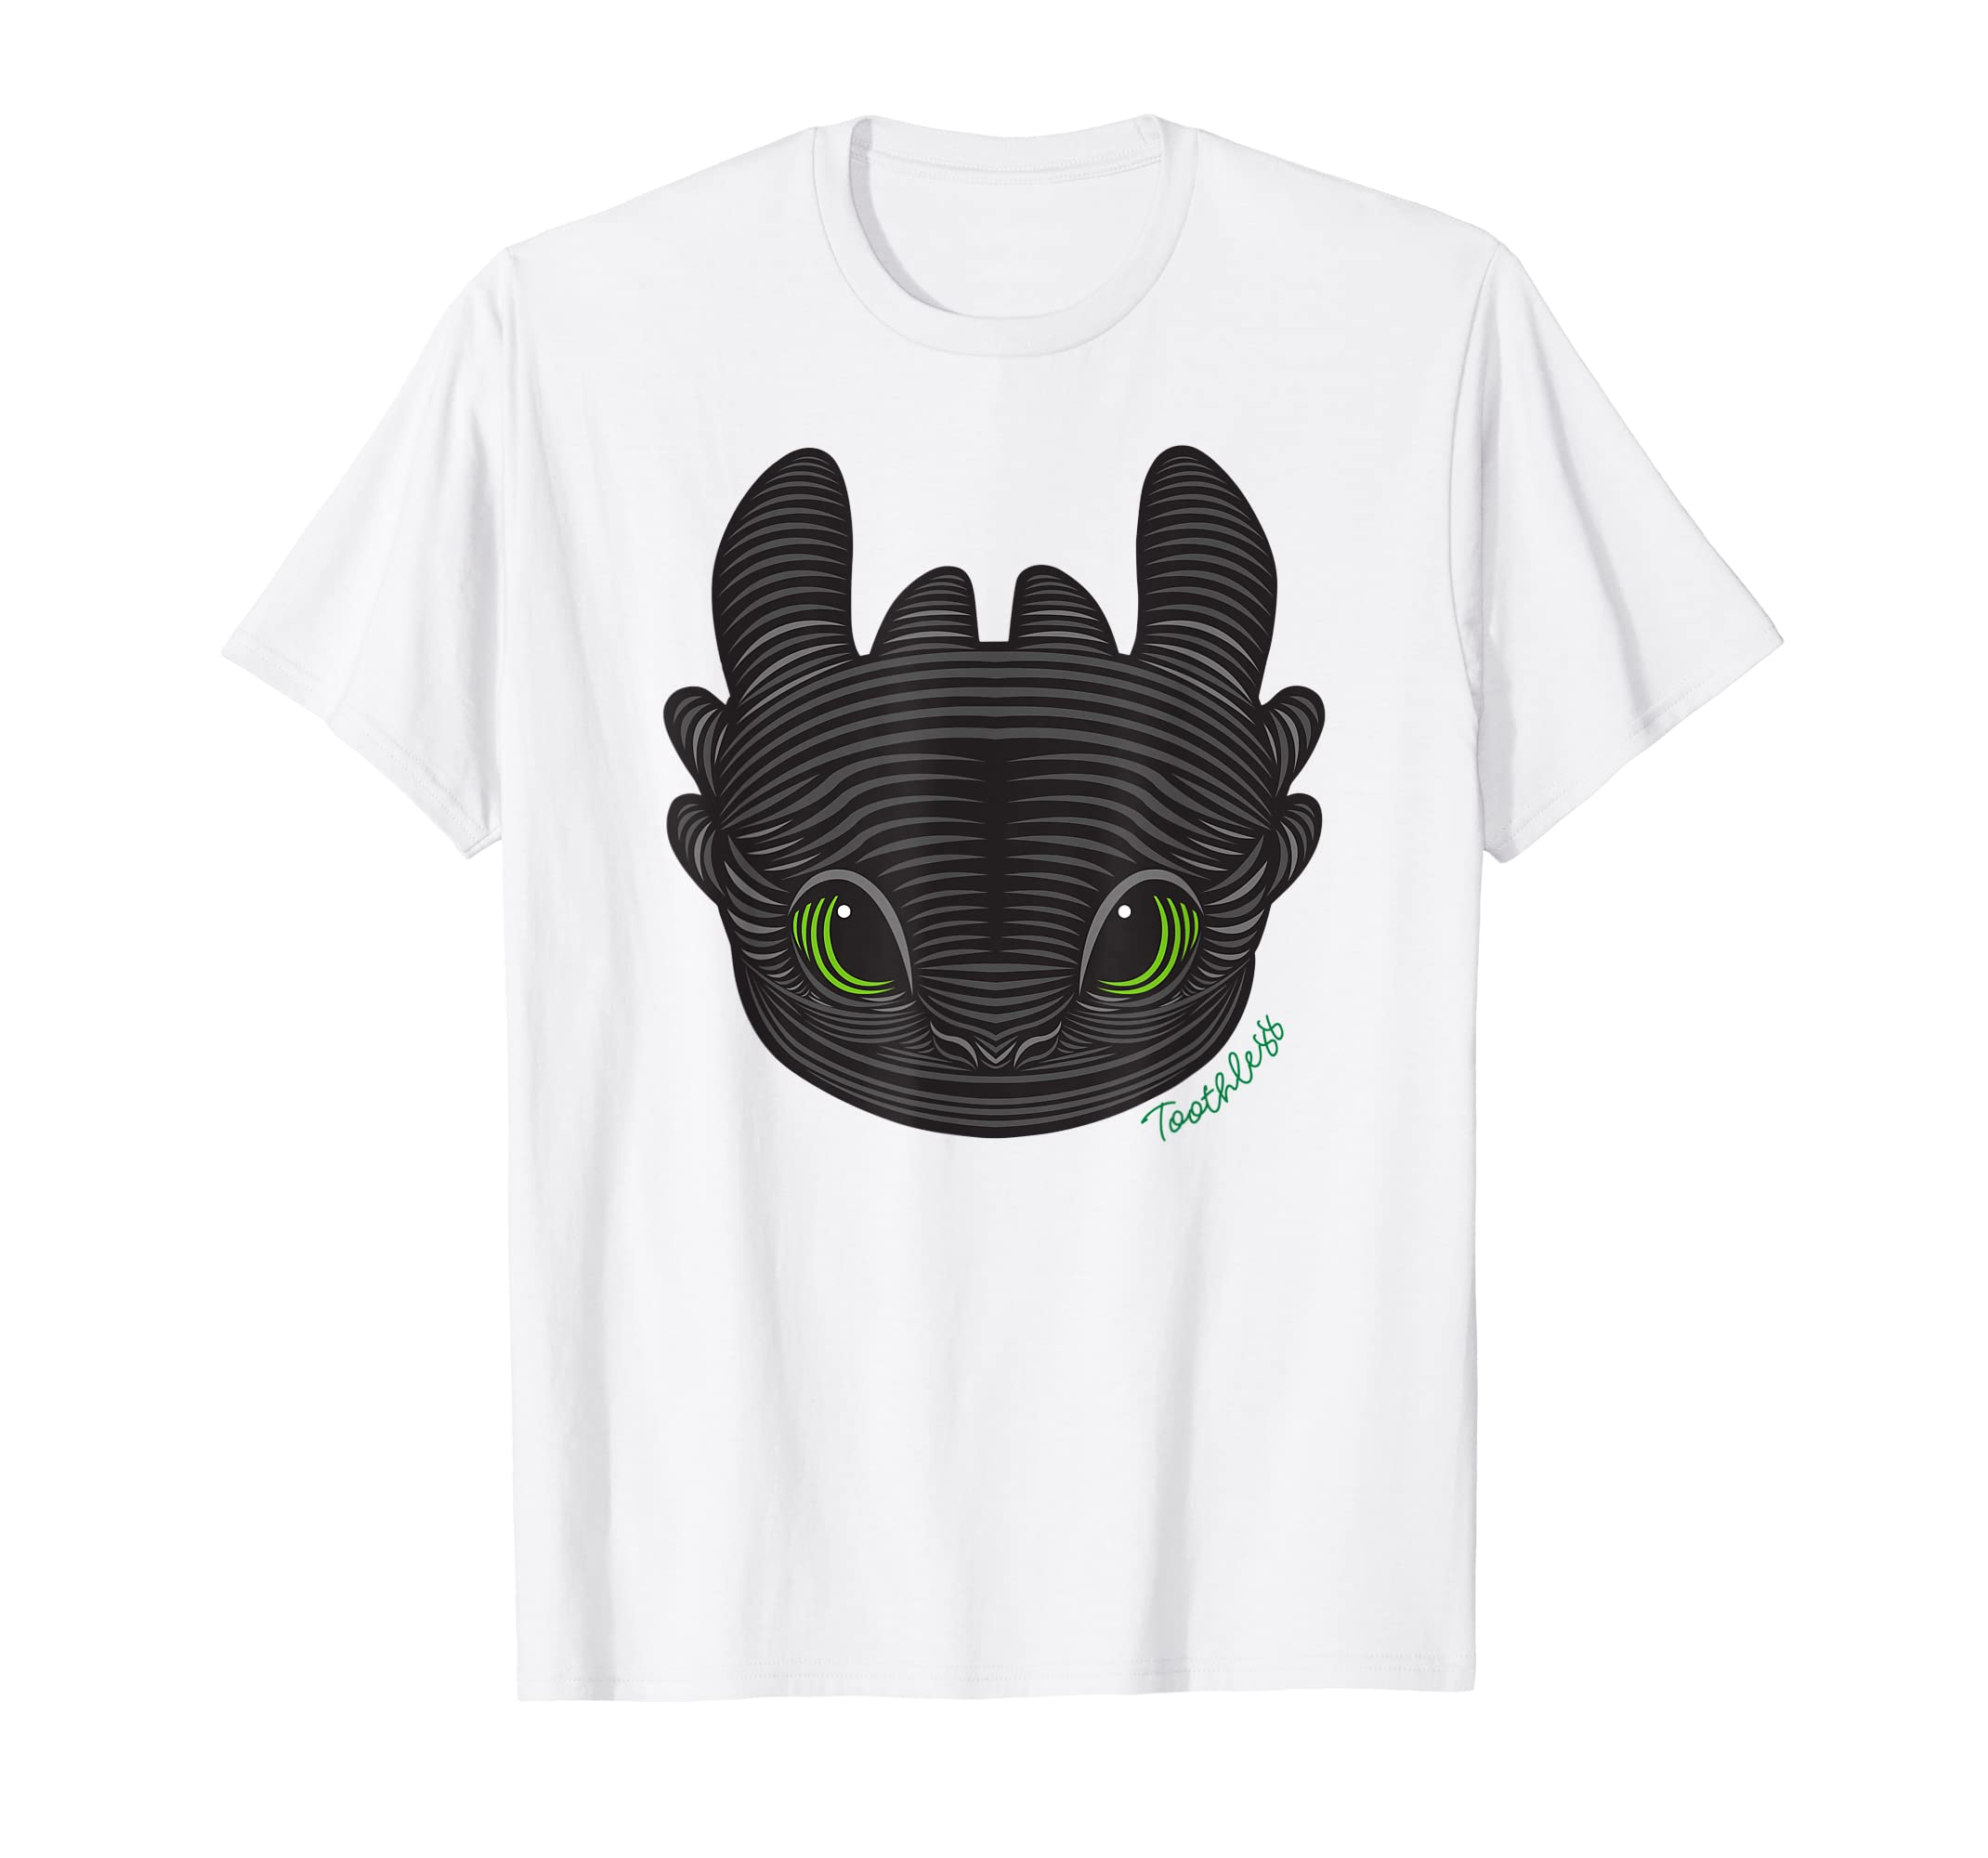 66a8c7a8477 Amazon.com  DreamWorks How to Train Your Dragon 3 Toothless T-shirt   Clothing